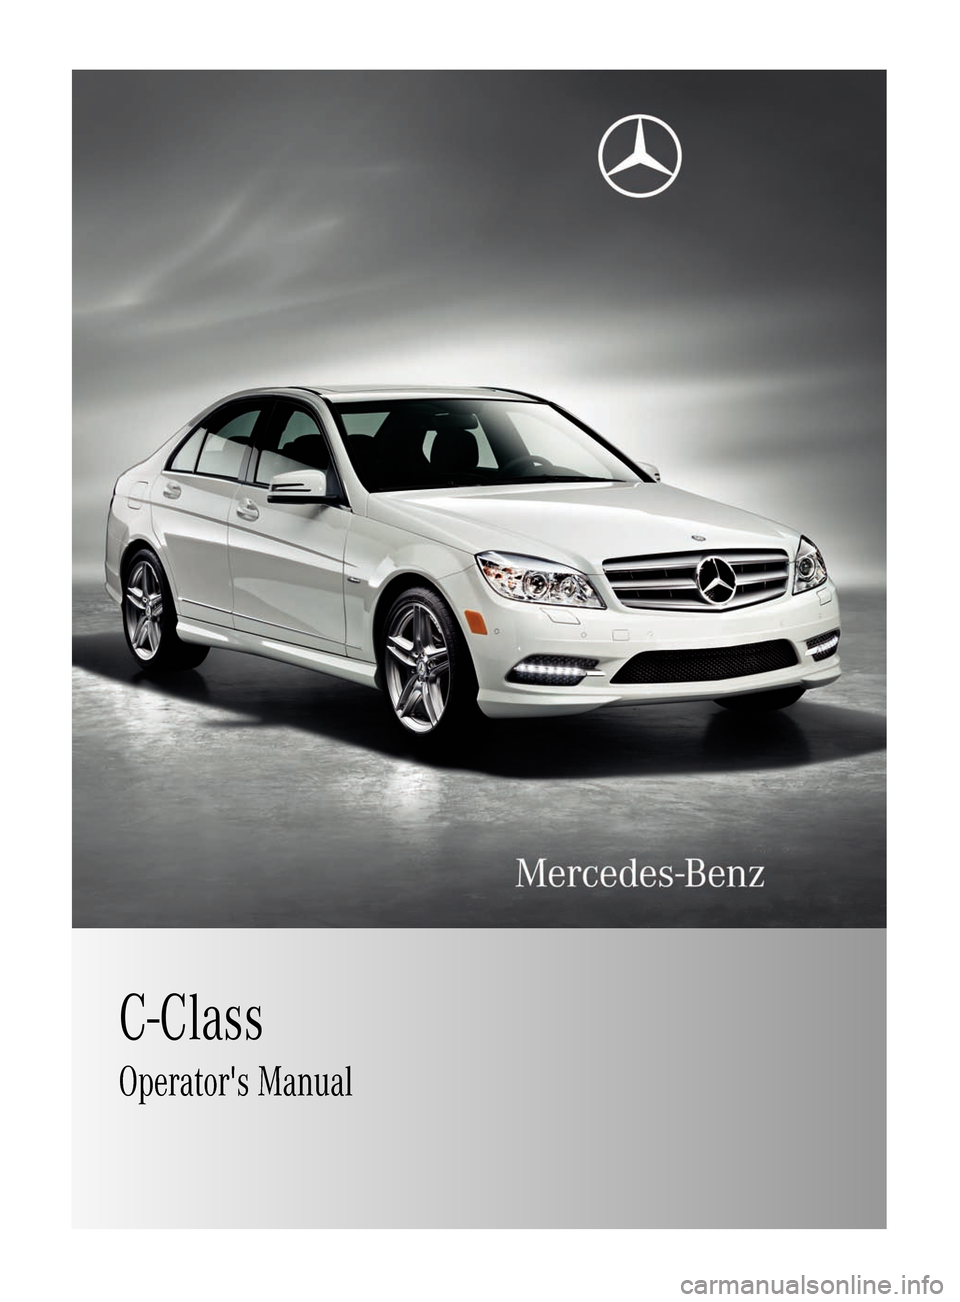 Mercedes benz c class 2011 w204 owner 39 s manual for Mercedes benz manuals